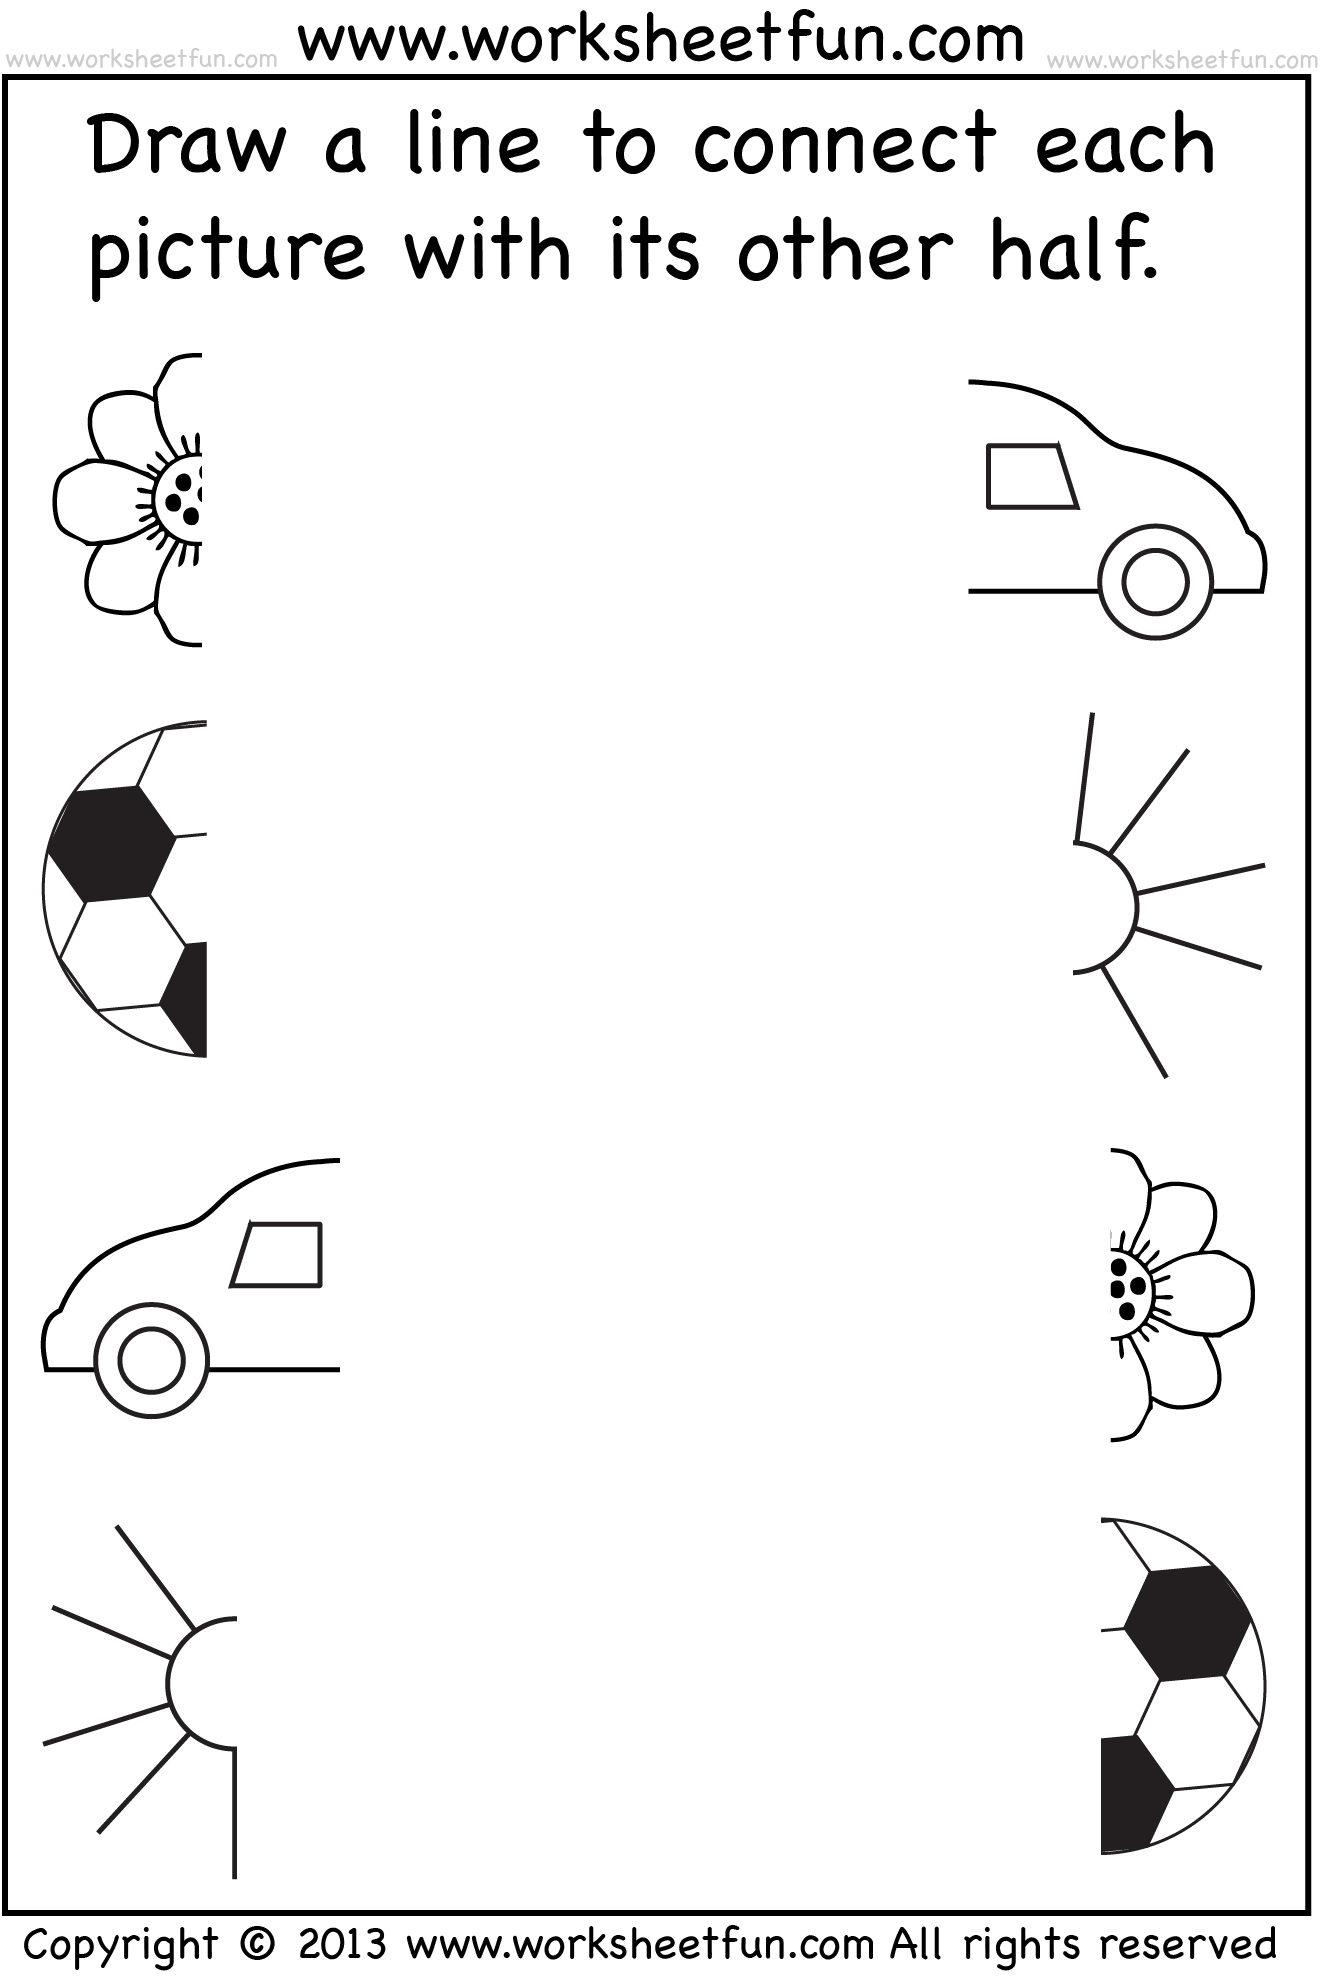 medium resolution of Preschool Worksheets - Connect Pictures - 5 Worksheets   Tarefas para  educação infantil